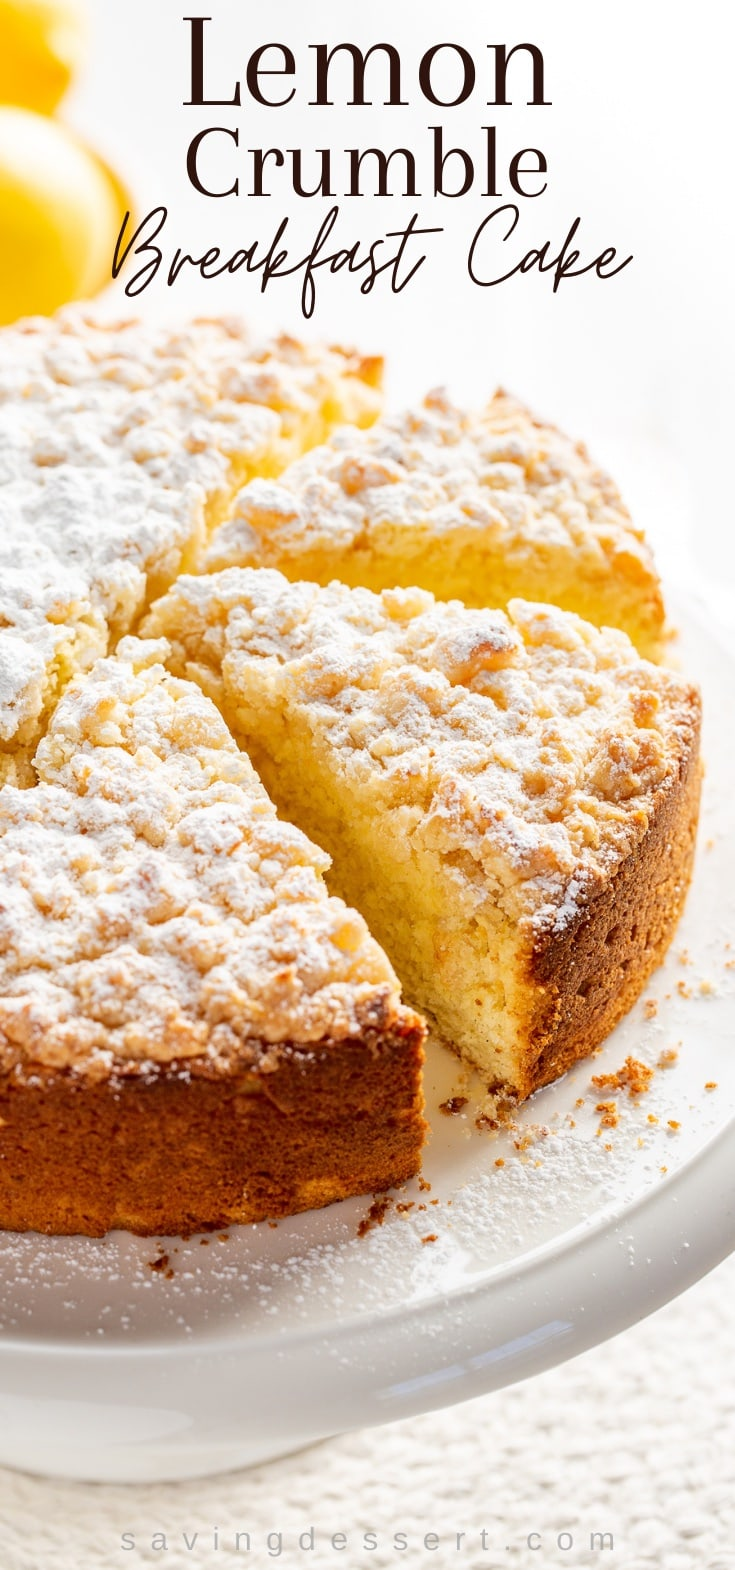 Lemon Crumble Breakfast Cake dusted with powdered sugar on a cake stand